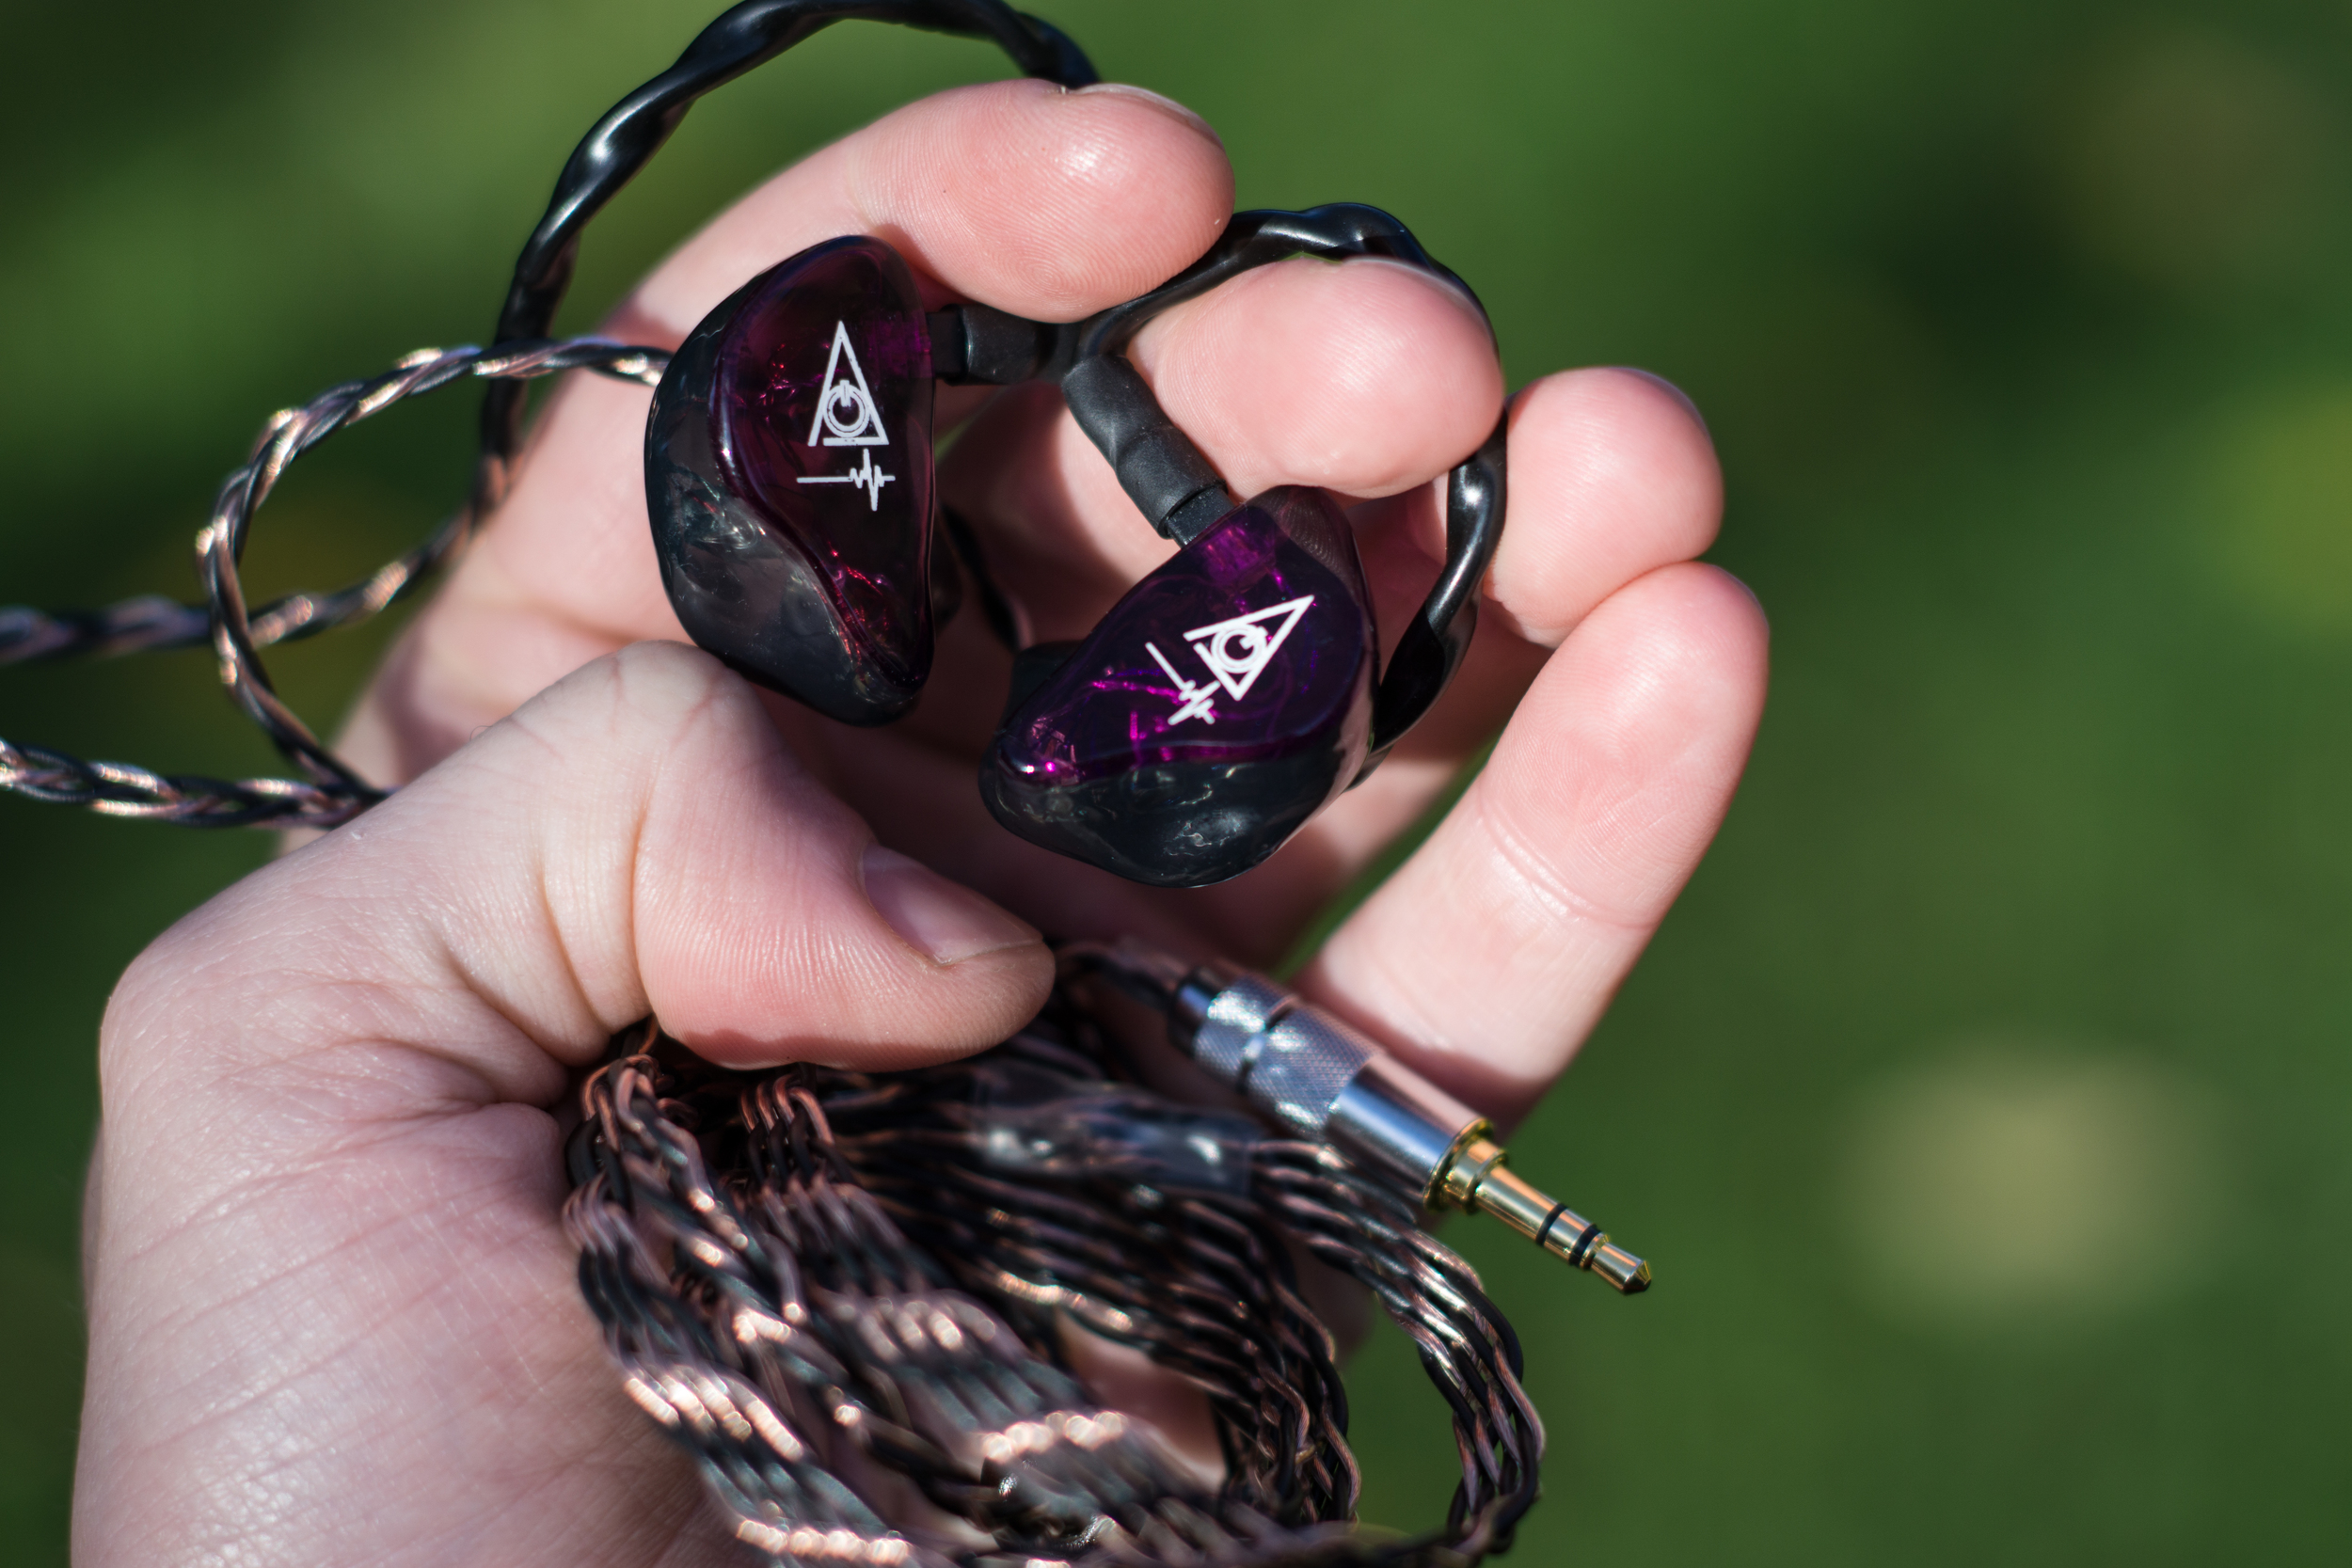 One of the best looking CIEM's I have the Ei.3 is well built and sounds great.